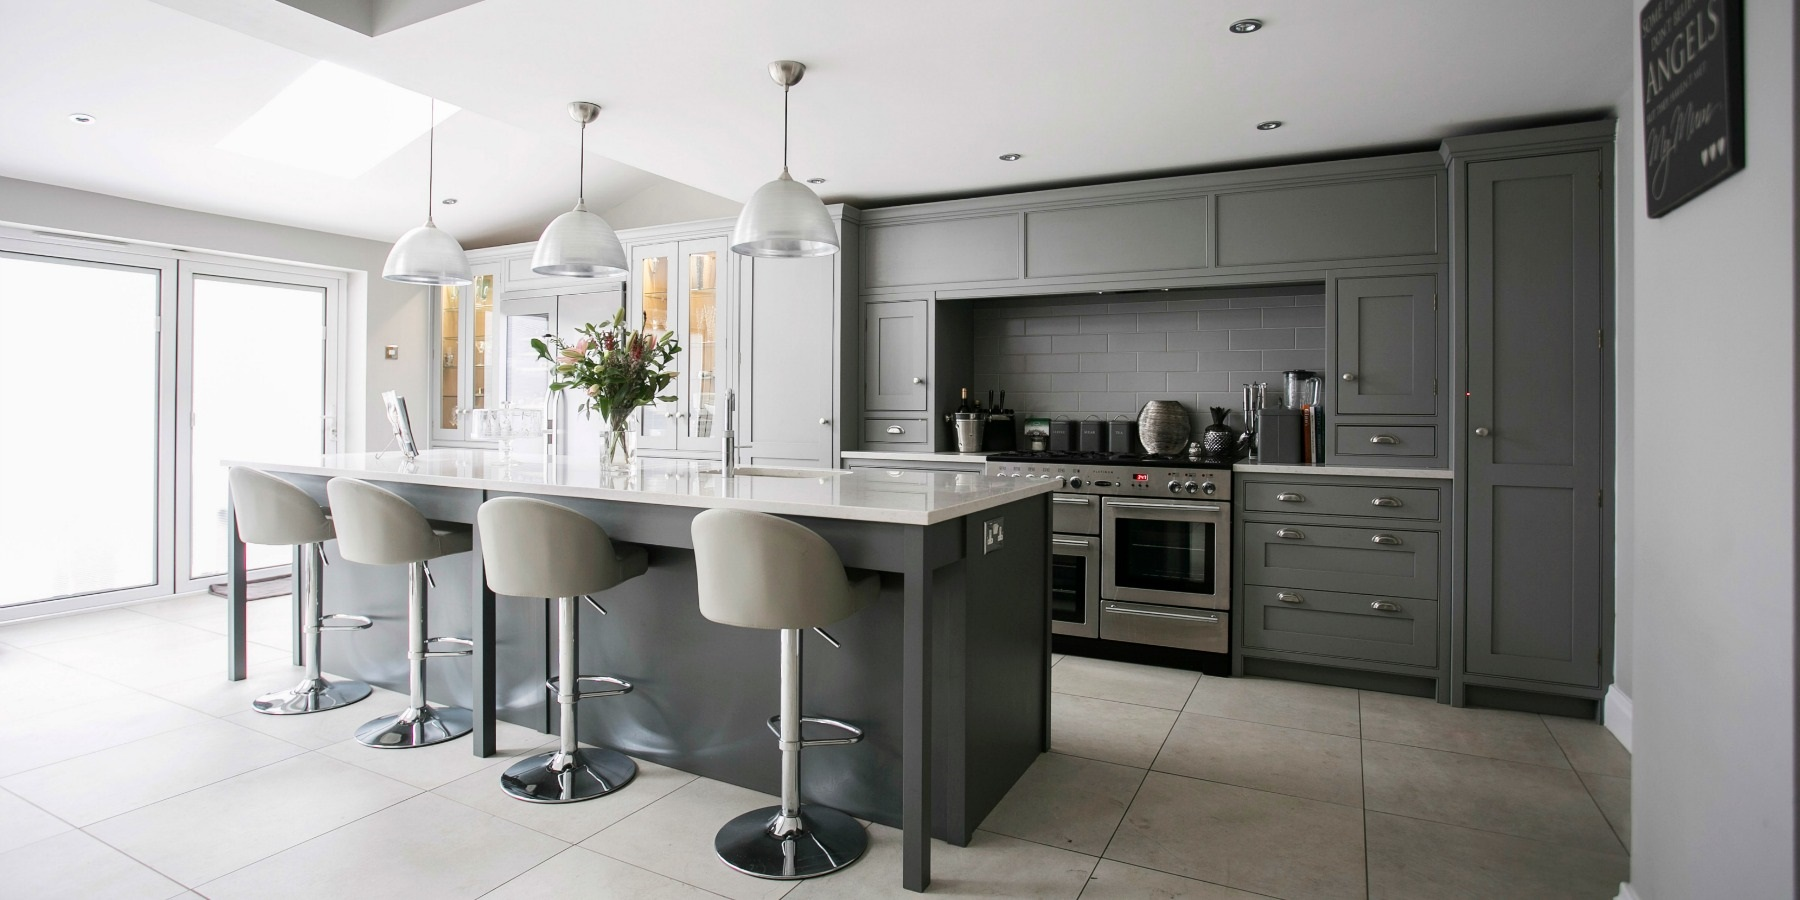 Contemporary Kitchens - Burlanes design kitchens inspired by you, to fit your lifestyle